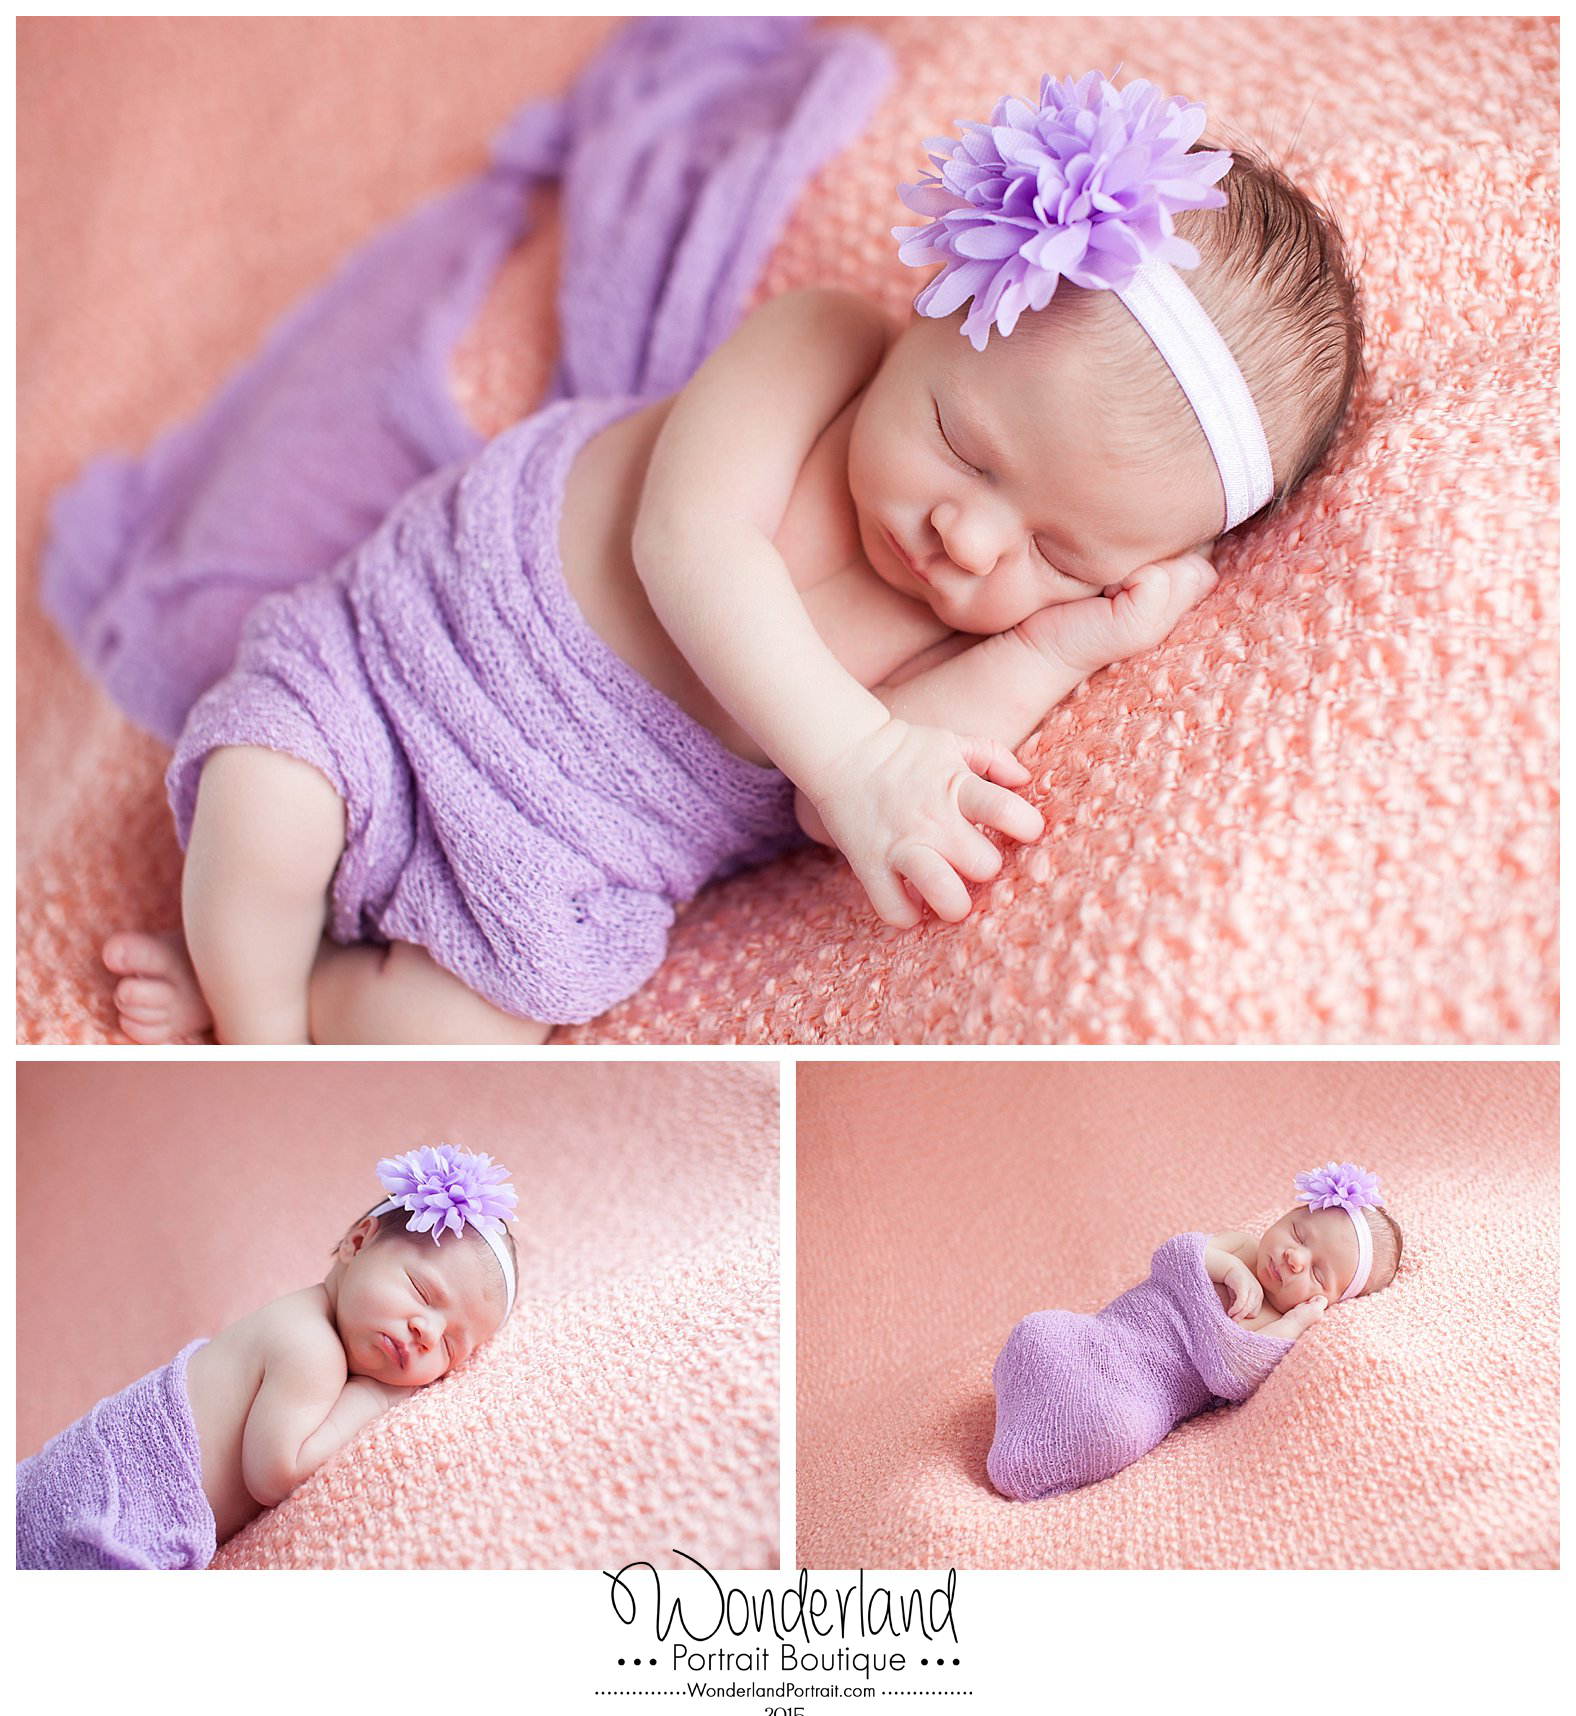 Sleepy Newborn Poses  Richboro PA Photographer WonderlandPortrait.com